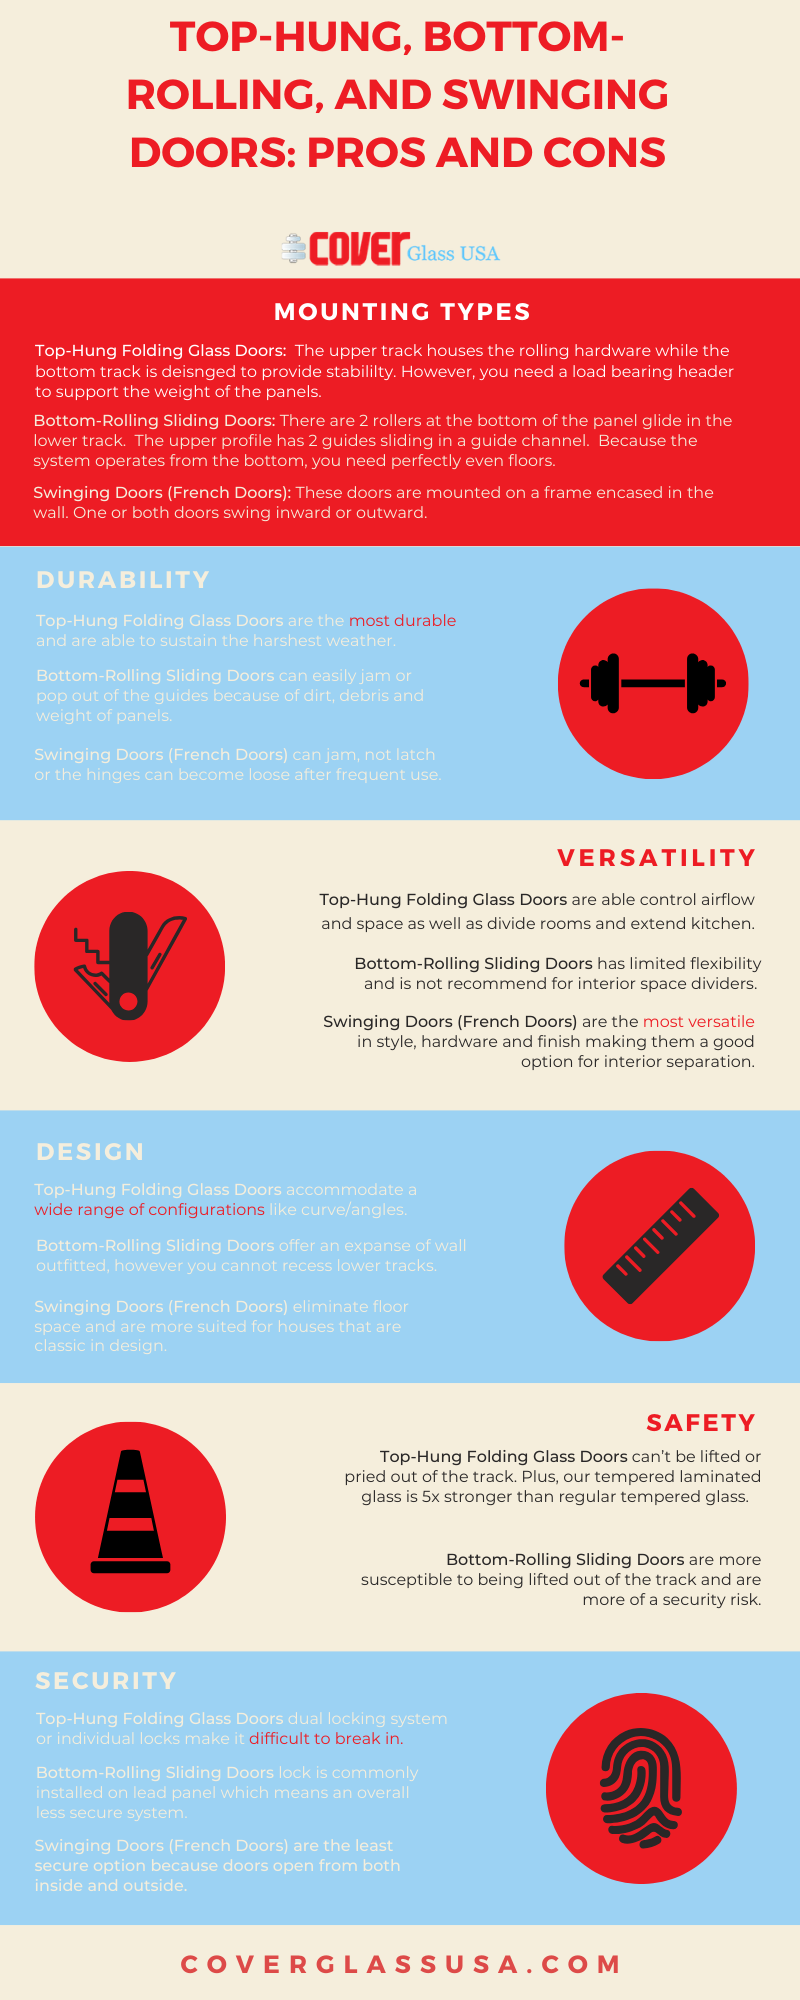 Coverglass USA -  Infographic Top-Hung Glass Door Systems (2)